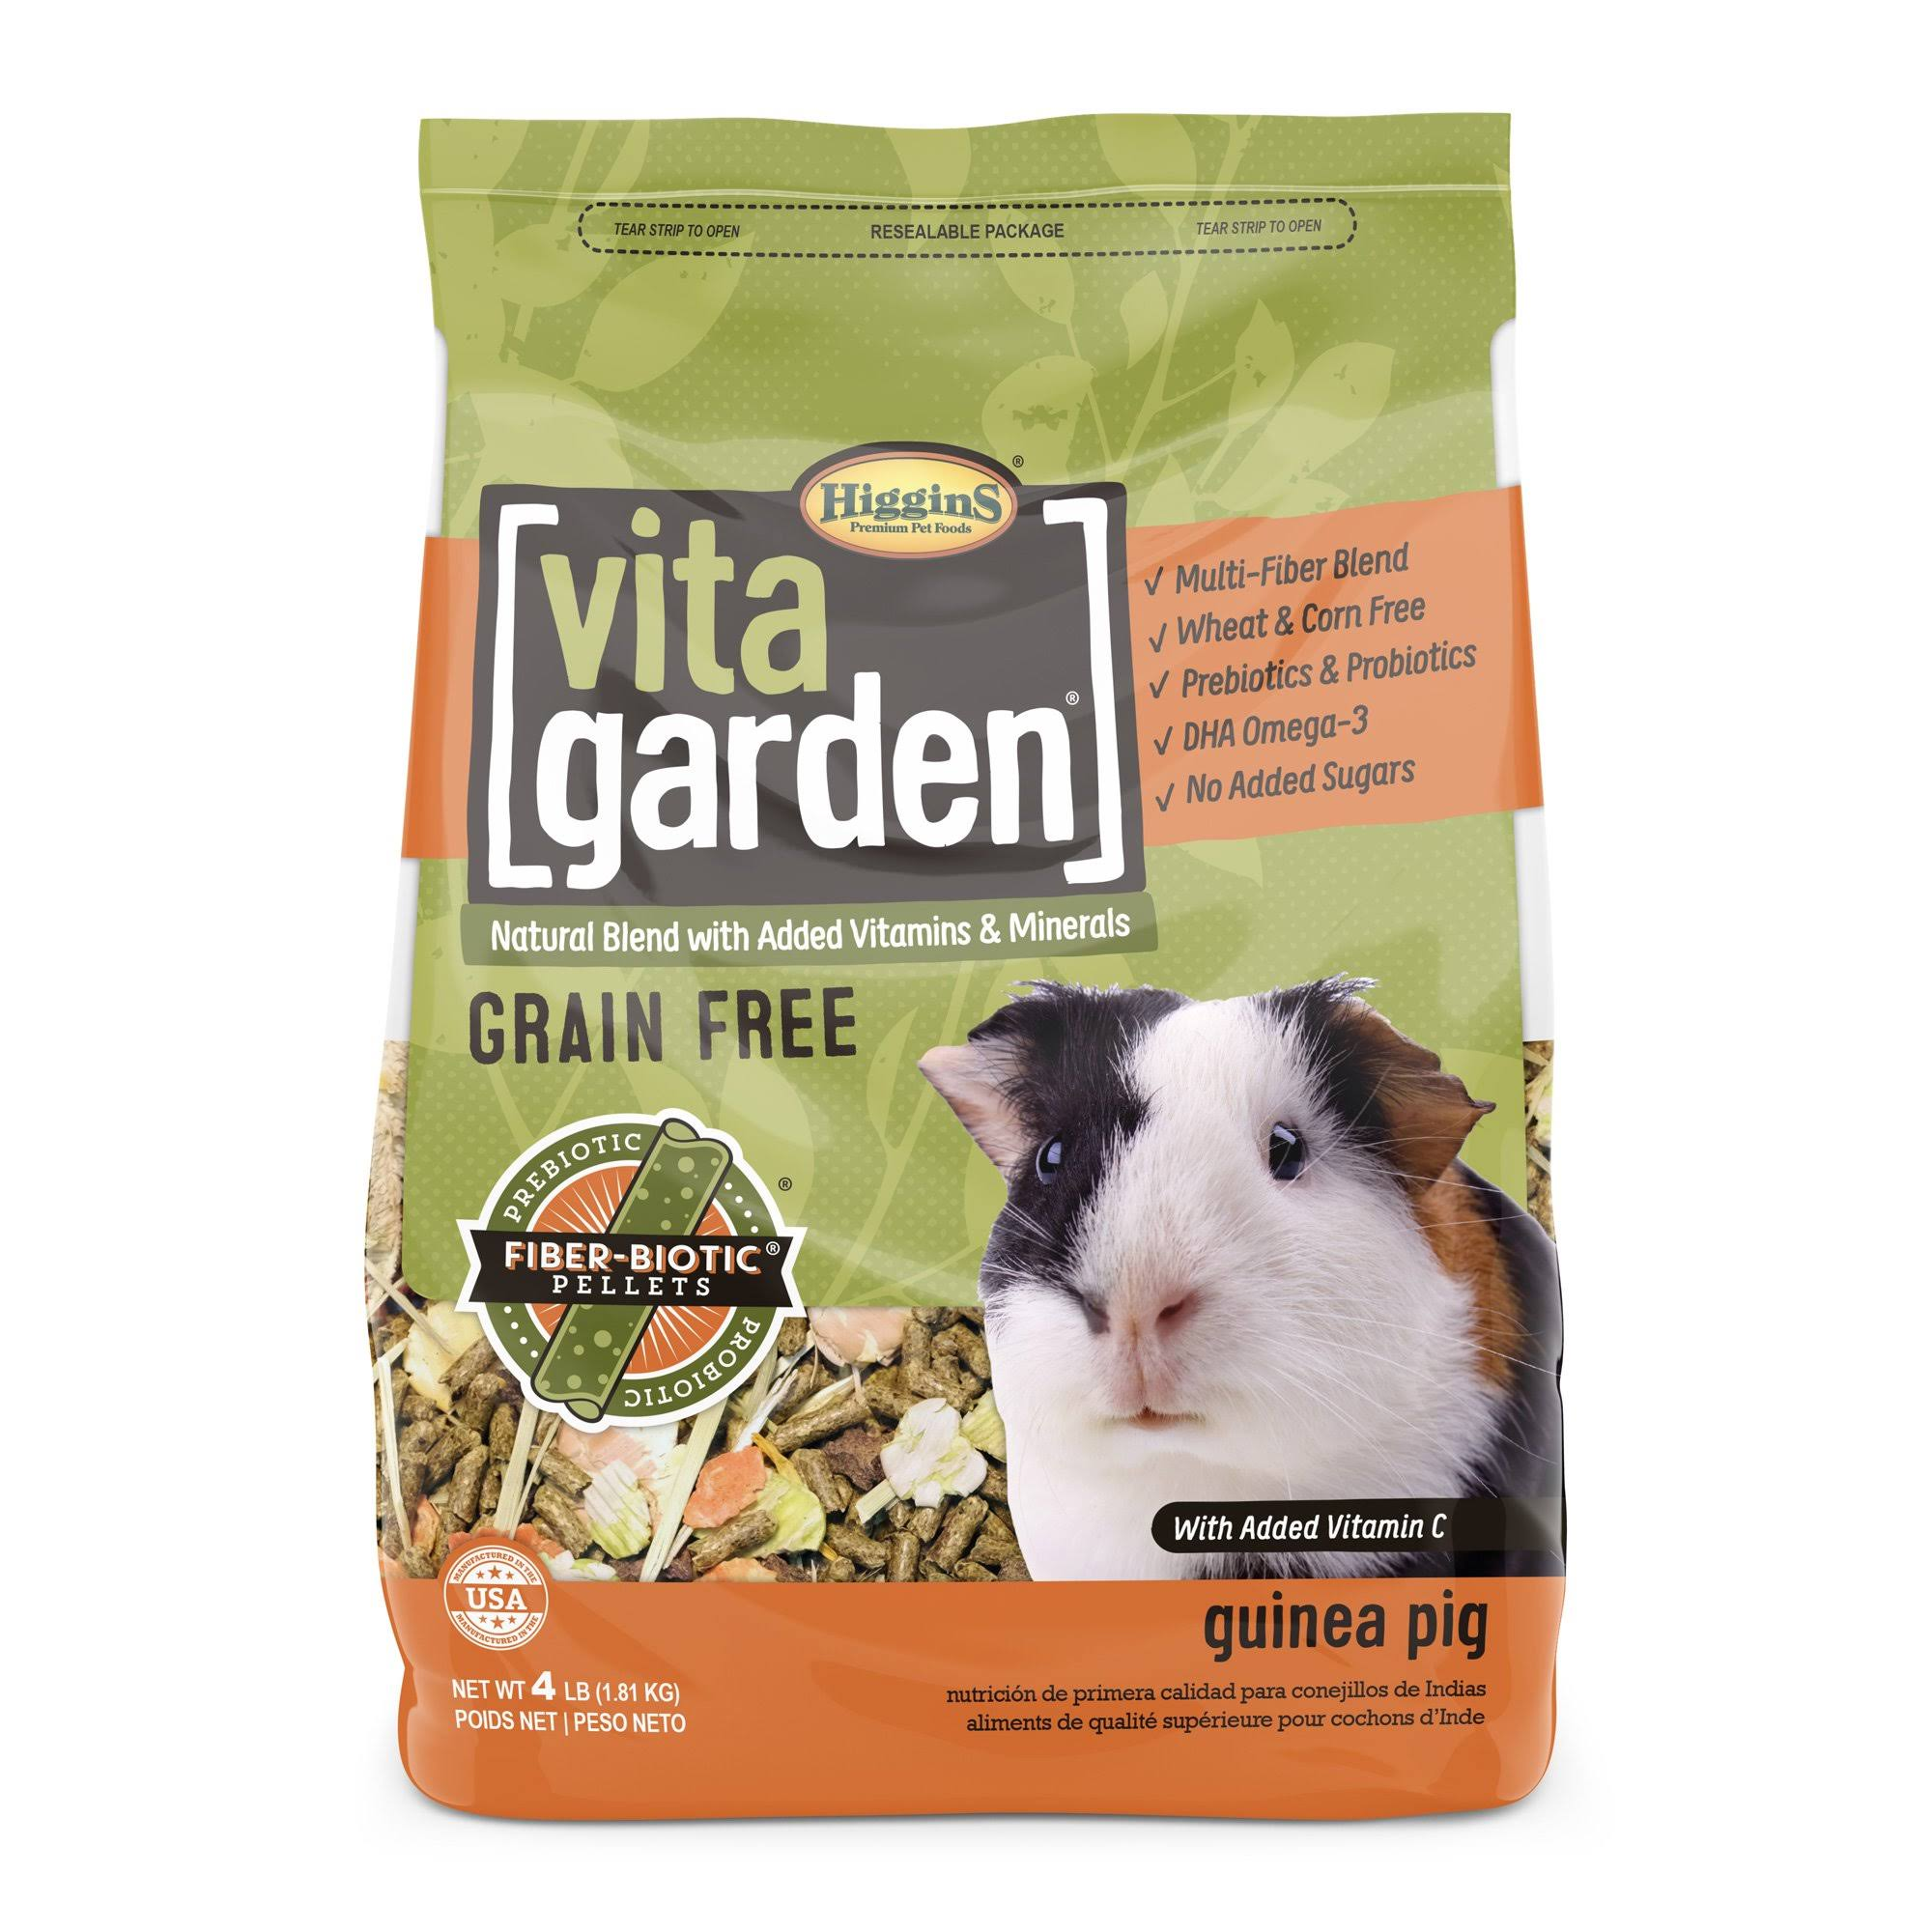 Higgins Vita Garden Guinea Pig Small Animal Food - 4lb